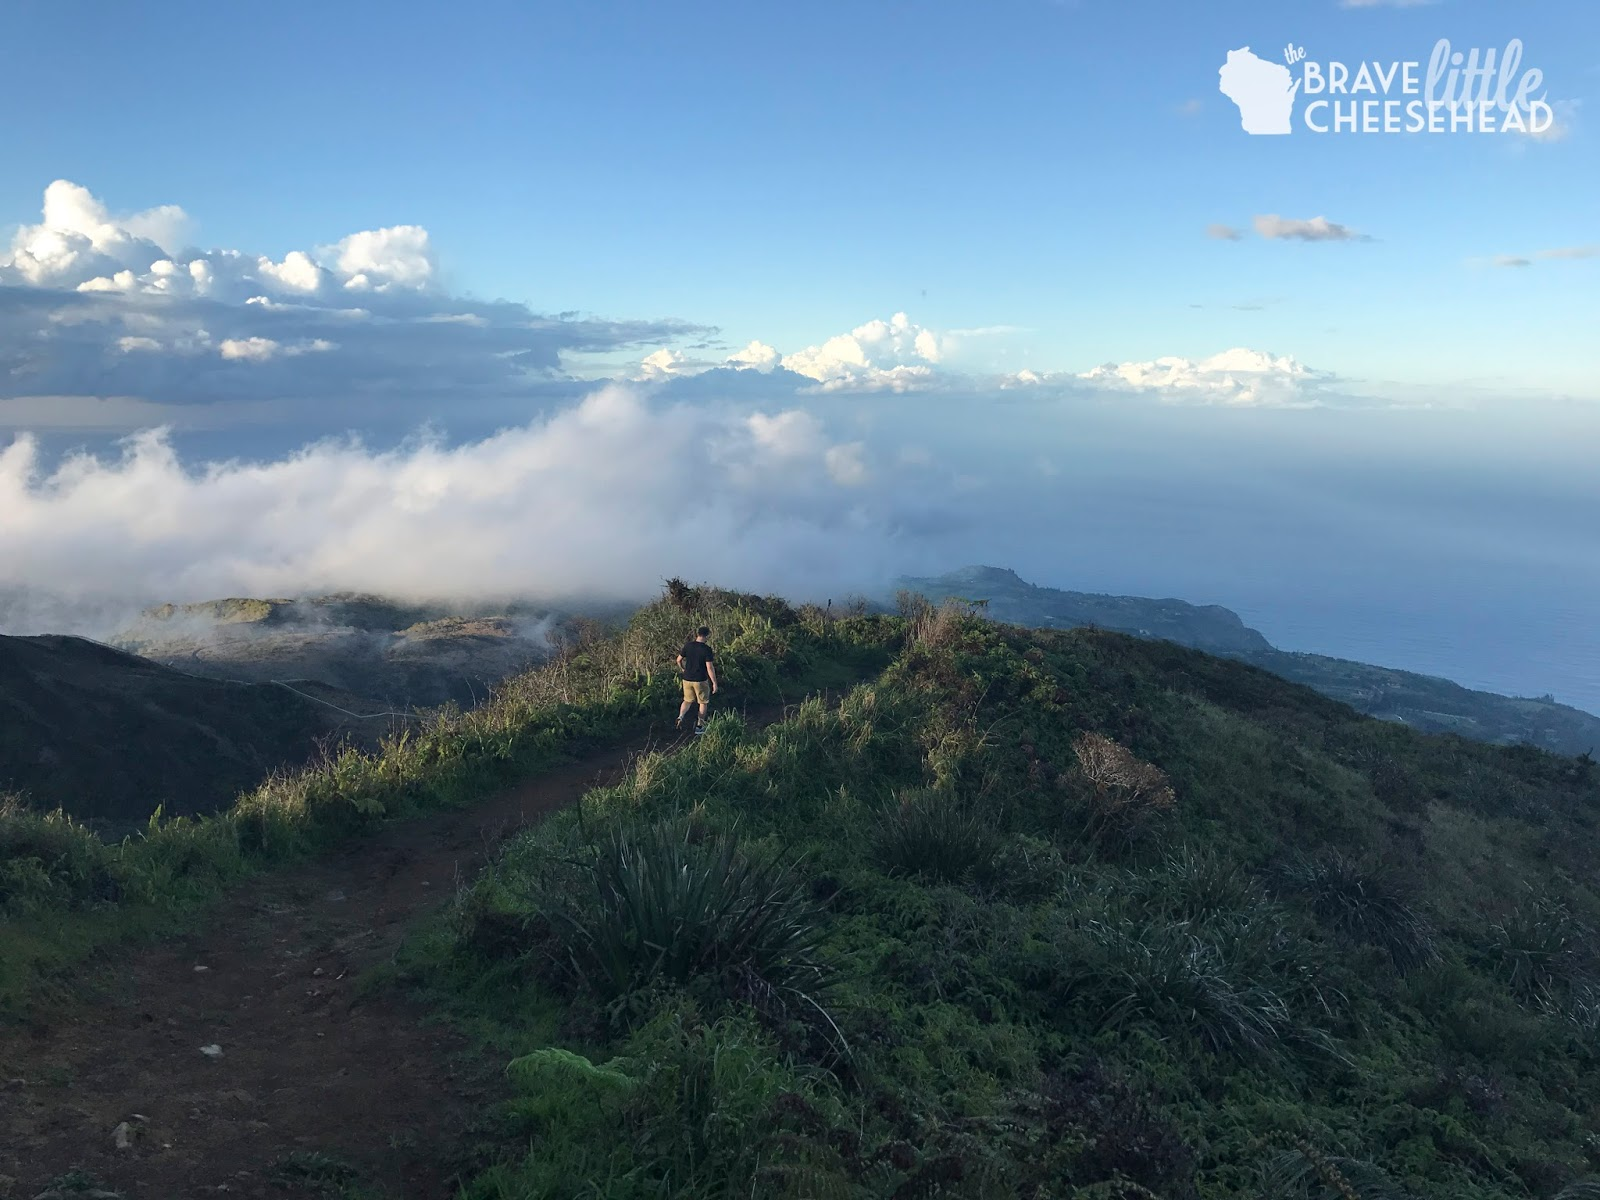 Hiking Maui and the Waihee Ridge Trail | The Brave Little Cheesehead at bravelittlecheesehead.com